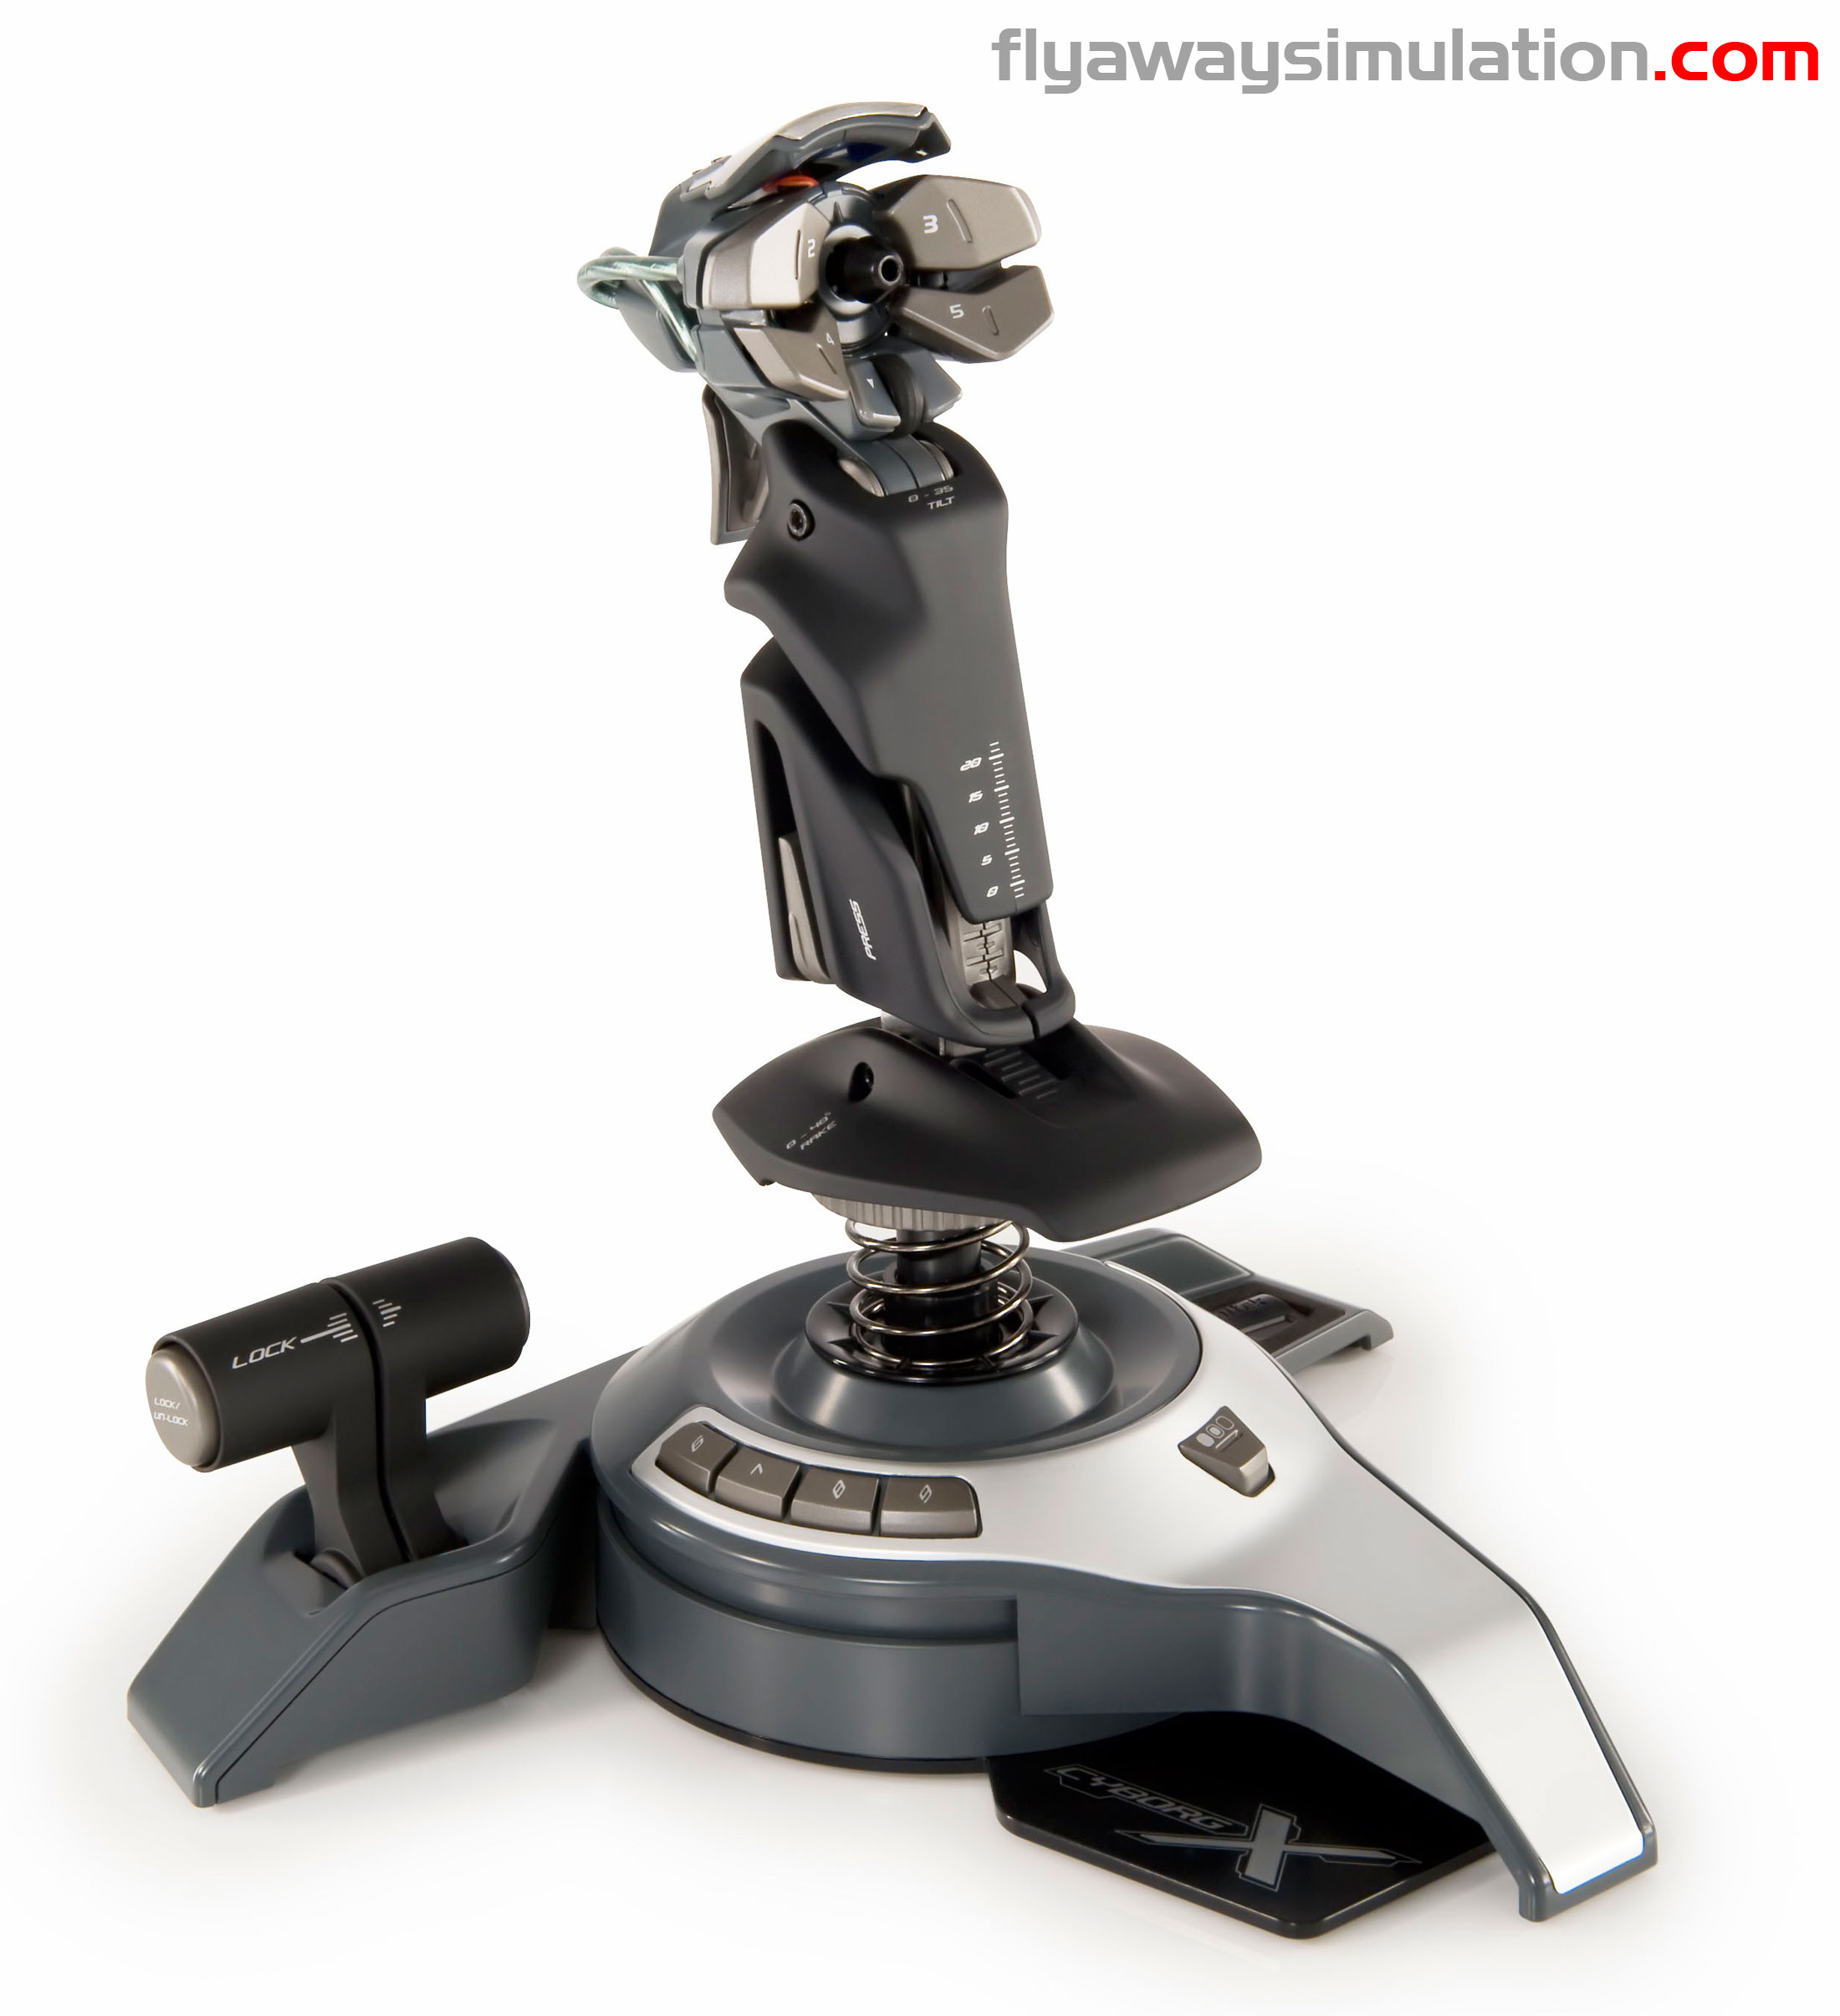 best helicopter joystick with 3624 on Airplane further F 12513 Occu53pl5qph816 moreover 1085703 mercedes Benz Designs A Golf Cart likewise Video Game Multiplex1 further Telecrane Remote Controls.